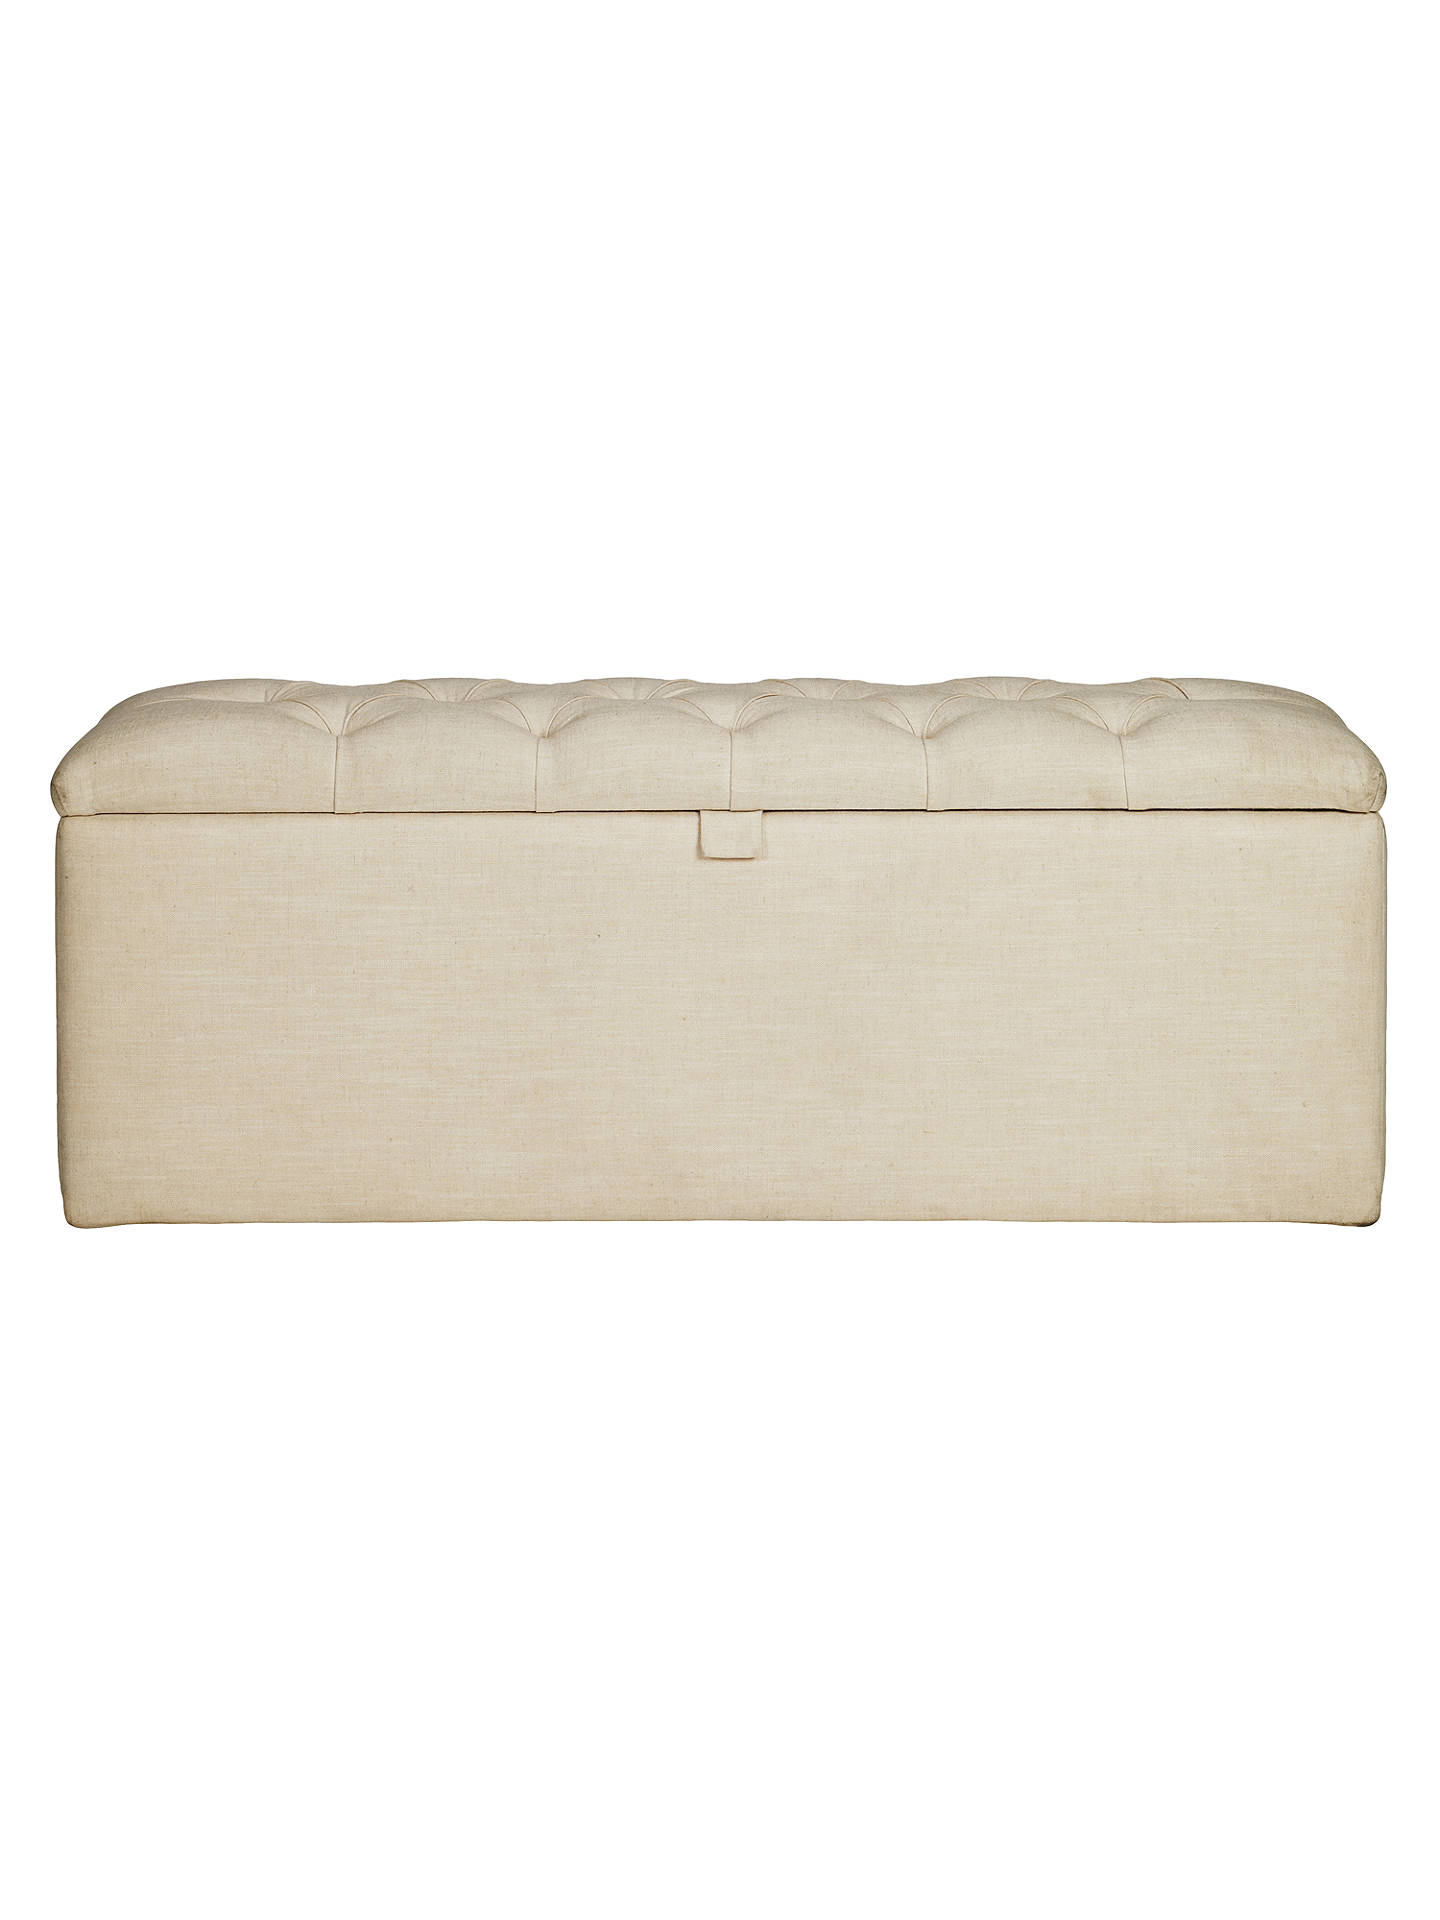 Ottomans Deacon Beige Upholstered Blanket Box: John Lewis Royale II Ottoman Blanket Box, Hera Beige At